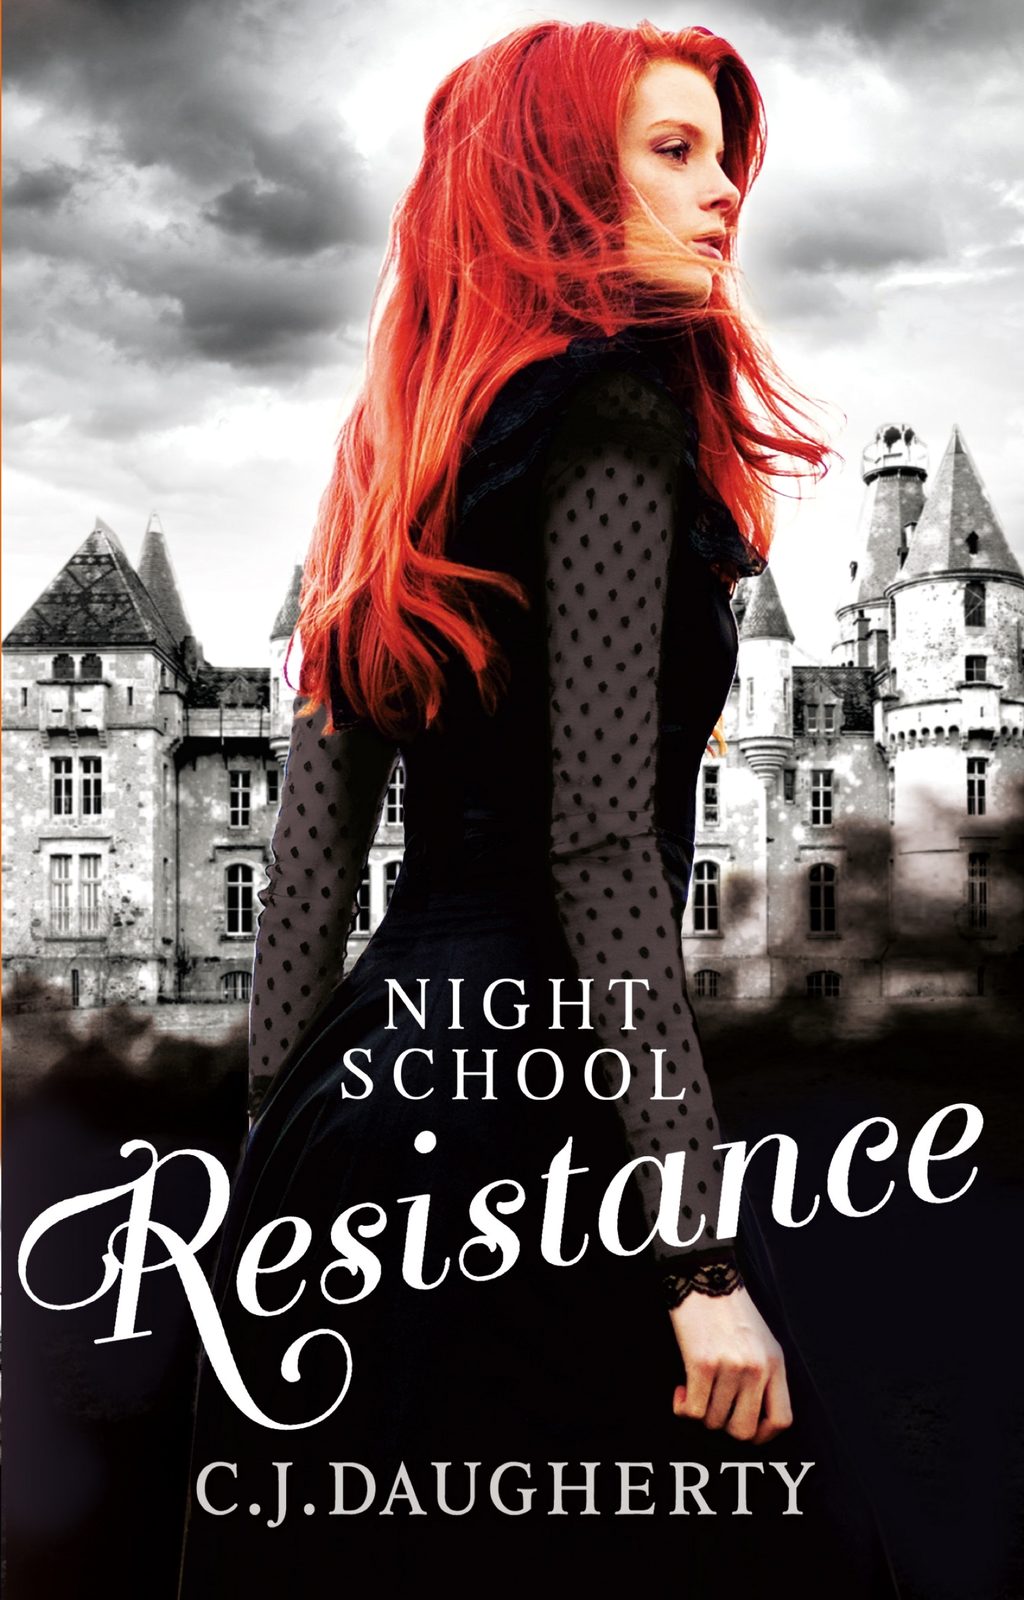 Night School: Resistance Number 4 in series